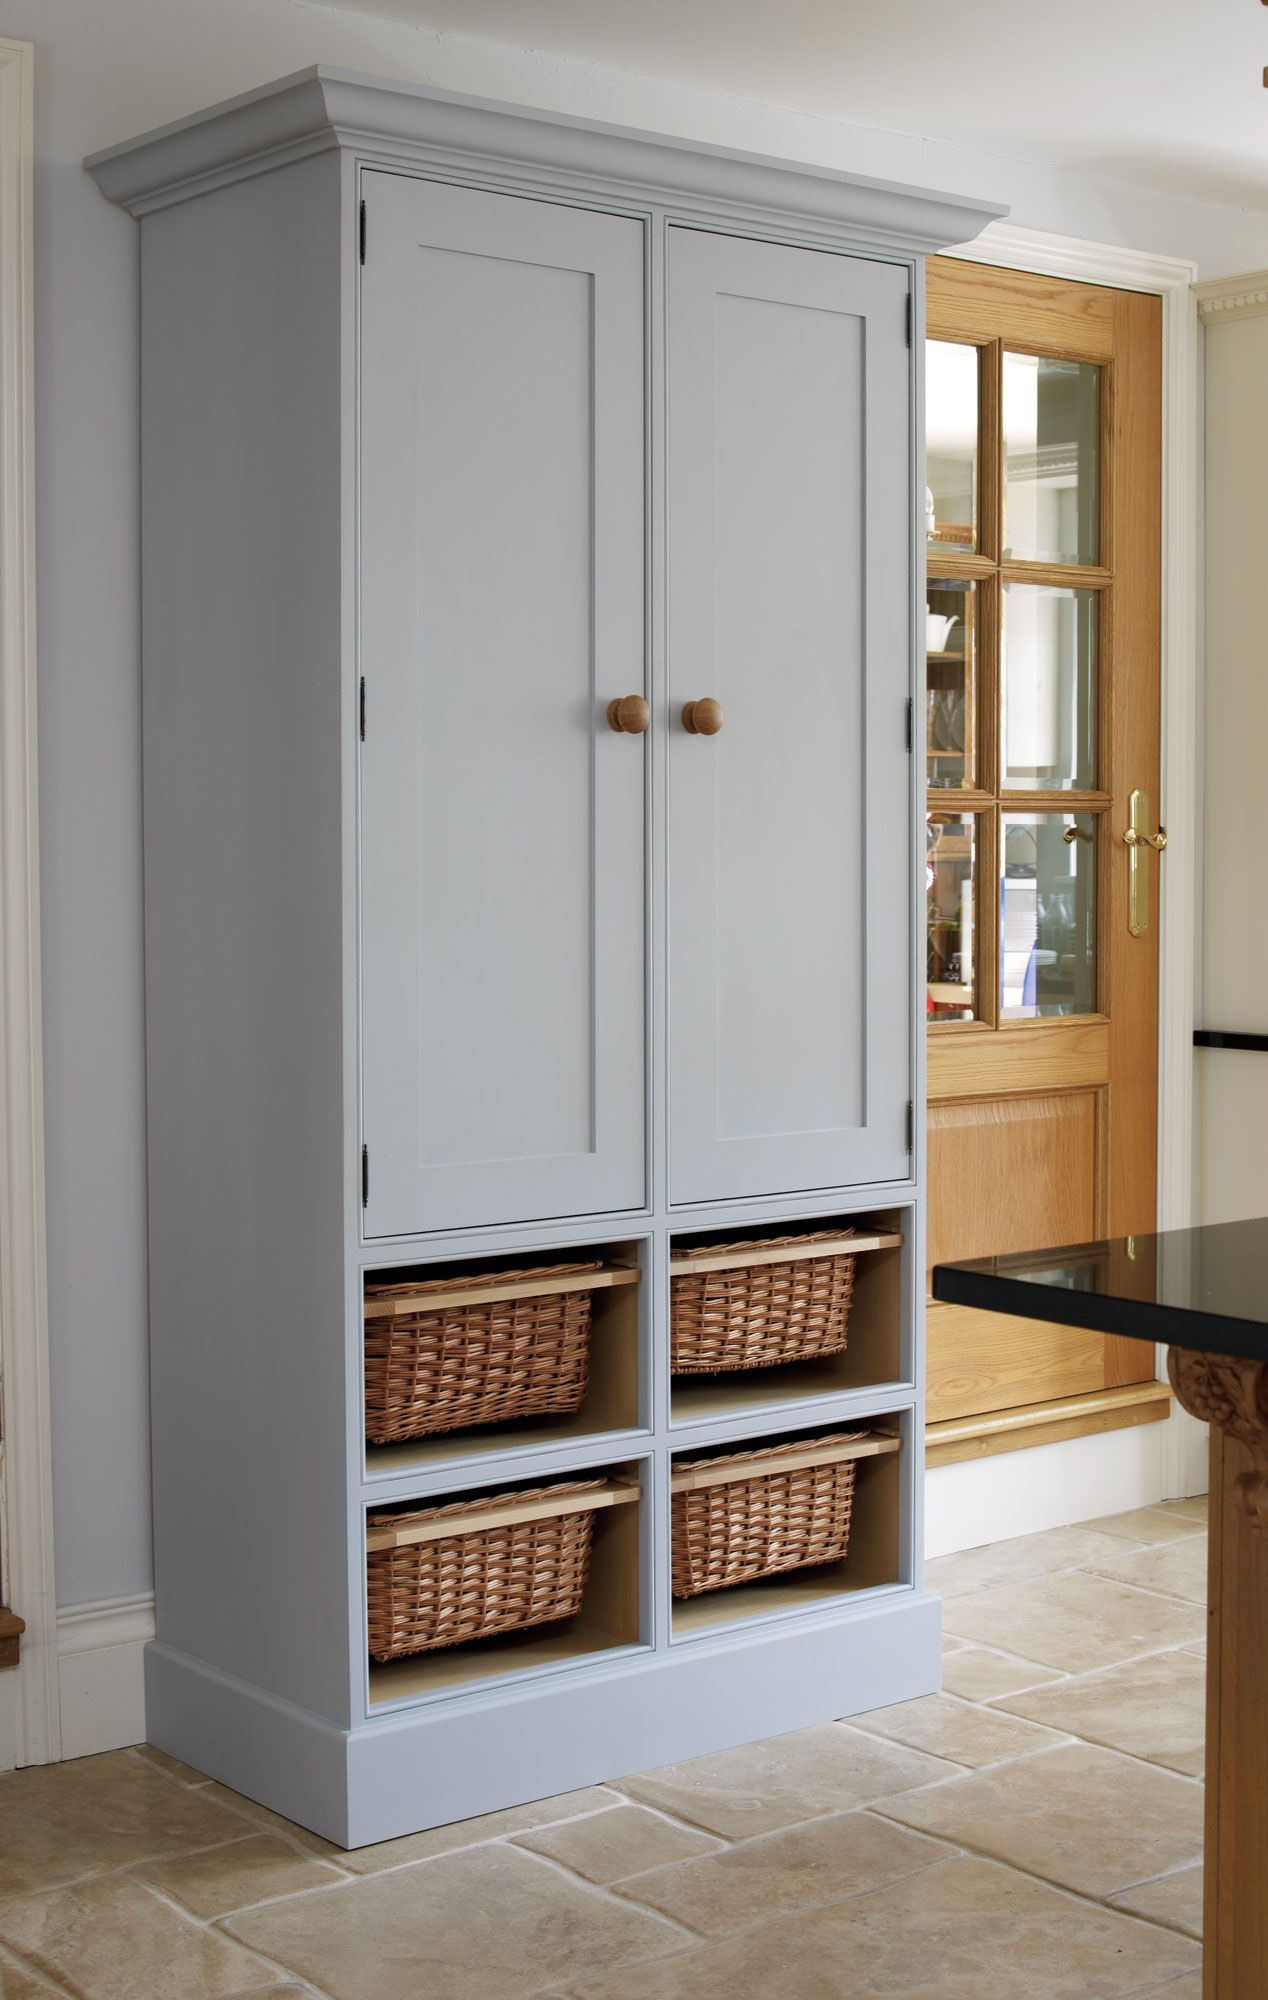 Free Standing Kitchen Larder The Bespoke Furniture